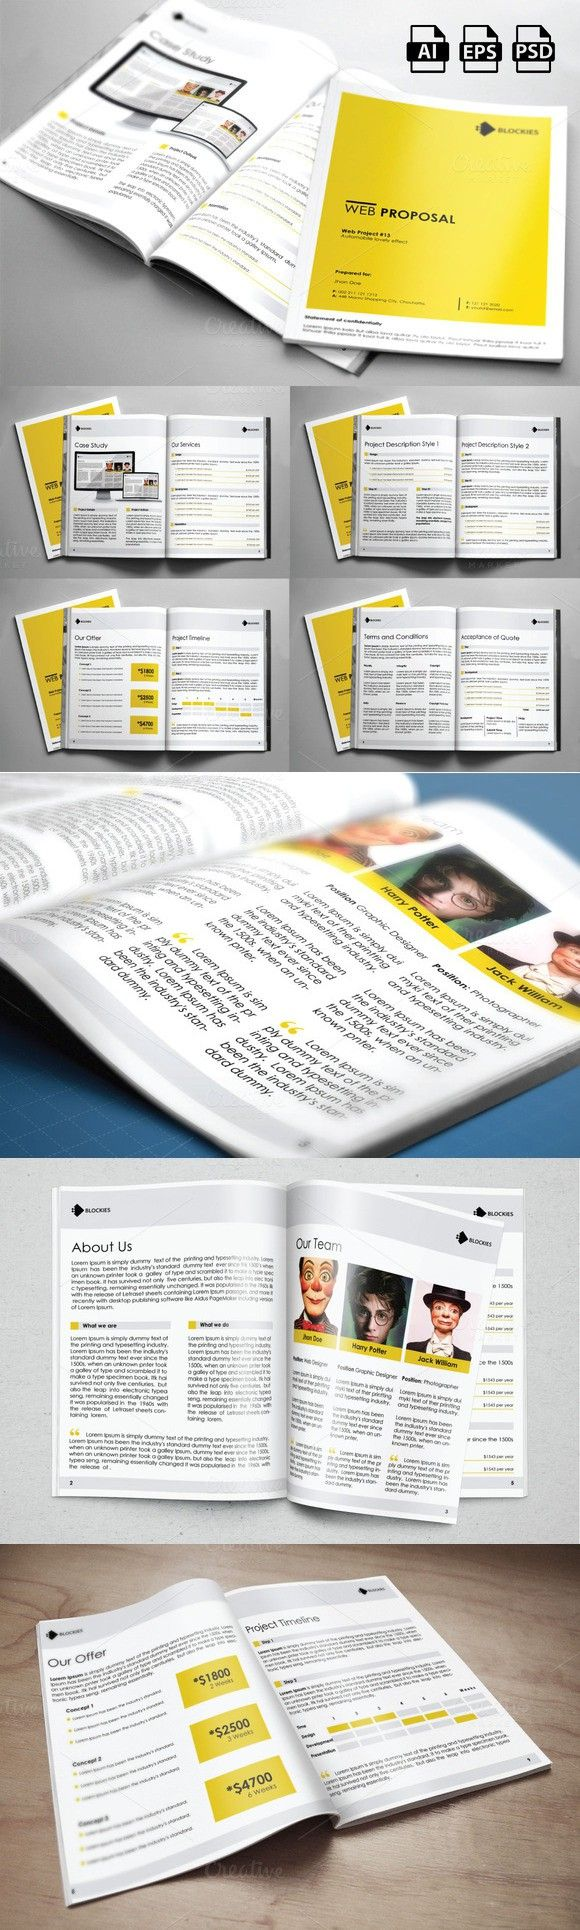 Web Proposal & Annual Report 42% Off. Stationery Templates